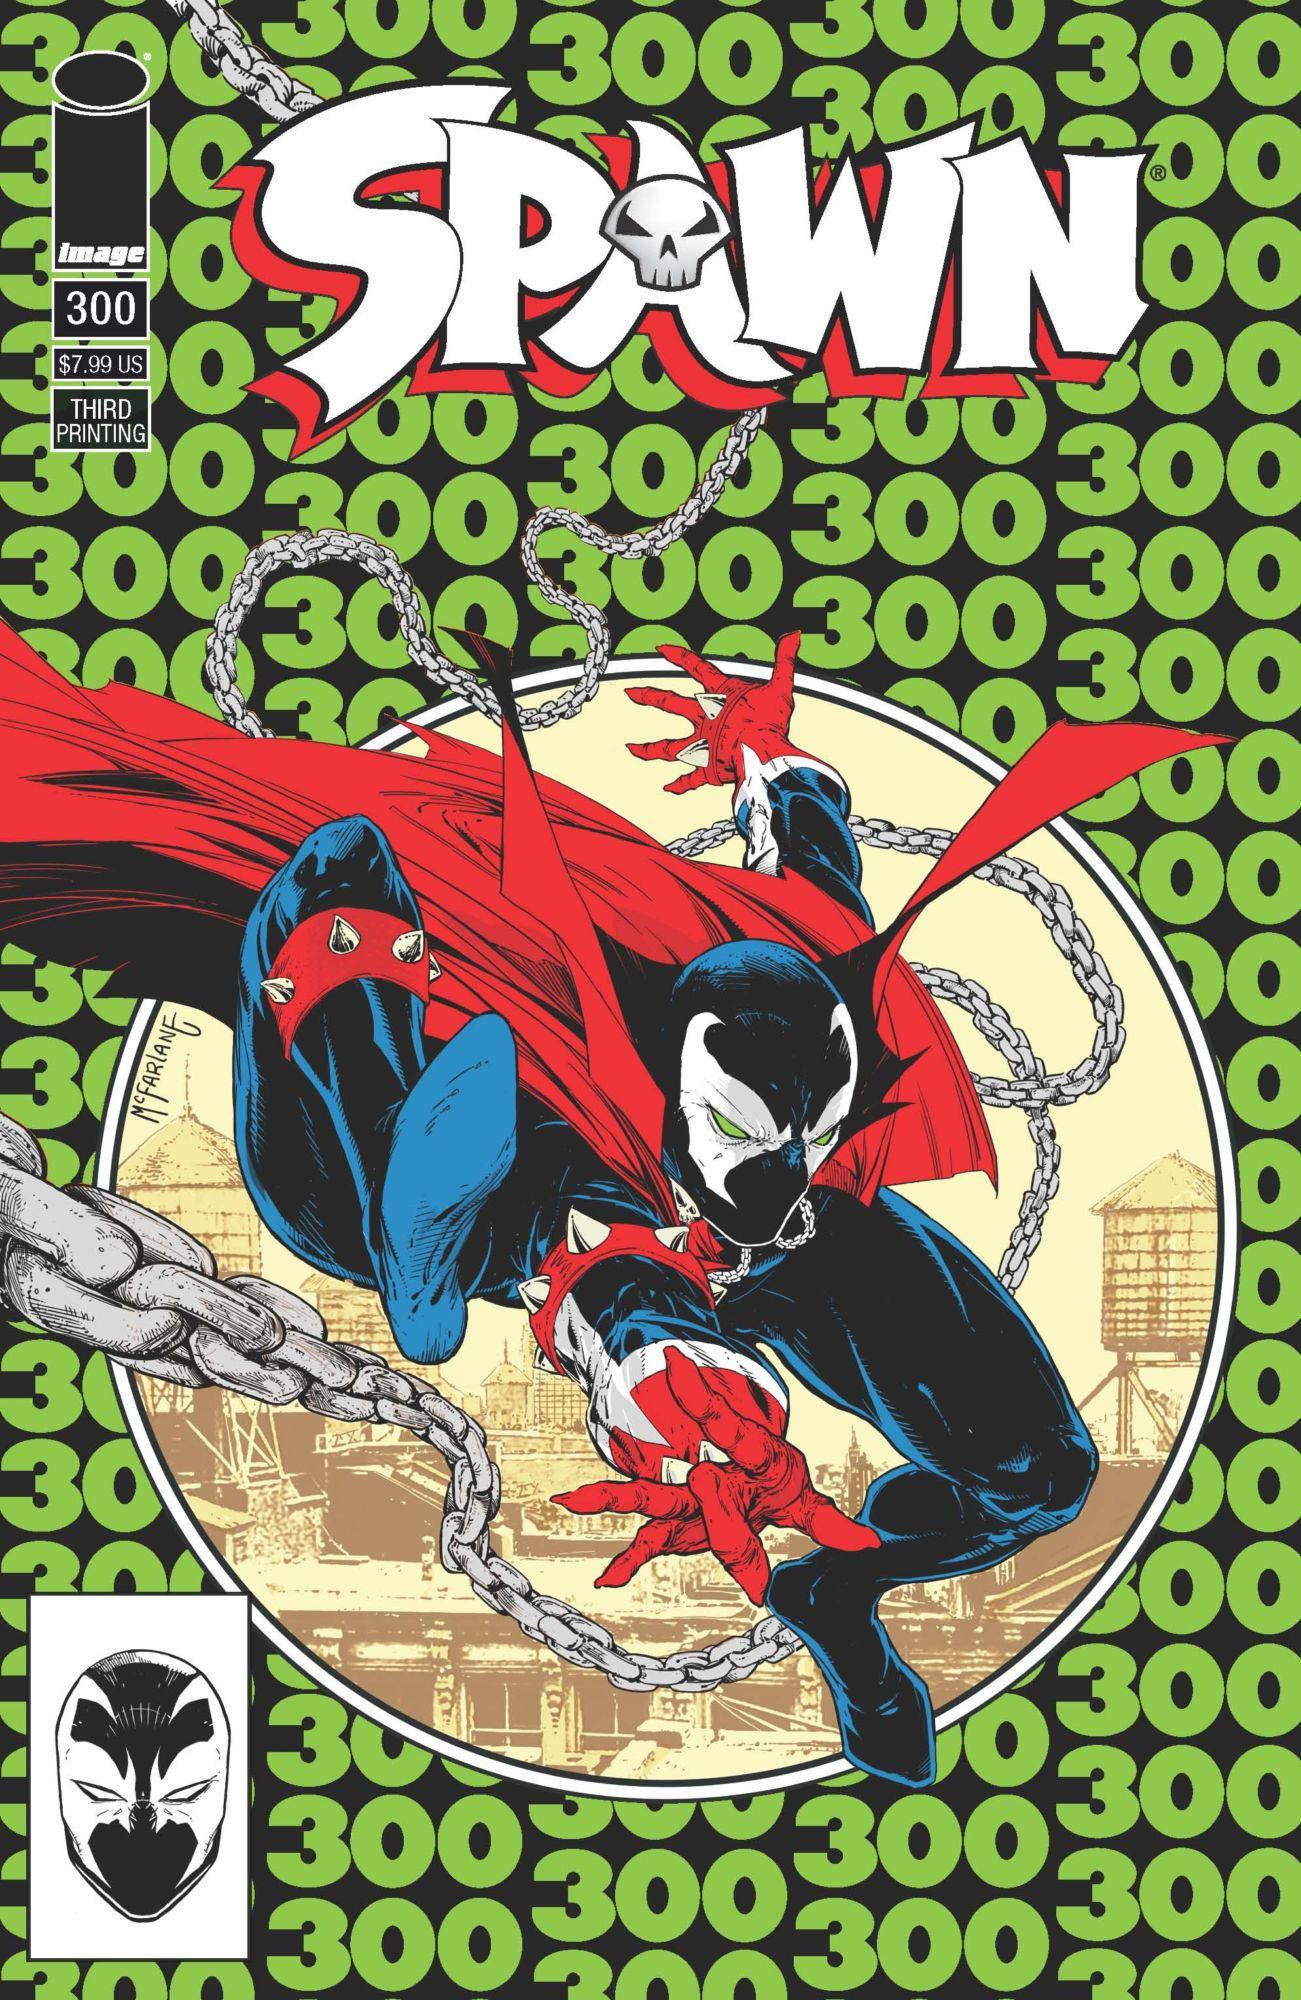 Spawn #300 Gets Its Third Printing – And Looks a Little Familiar